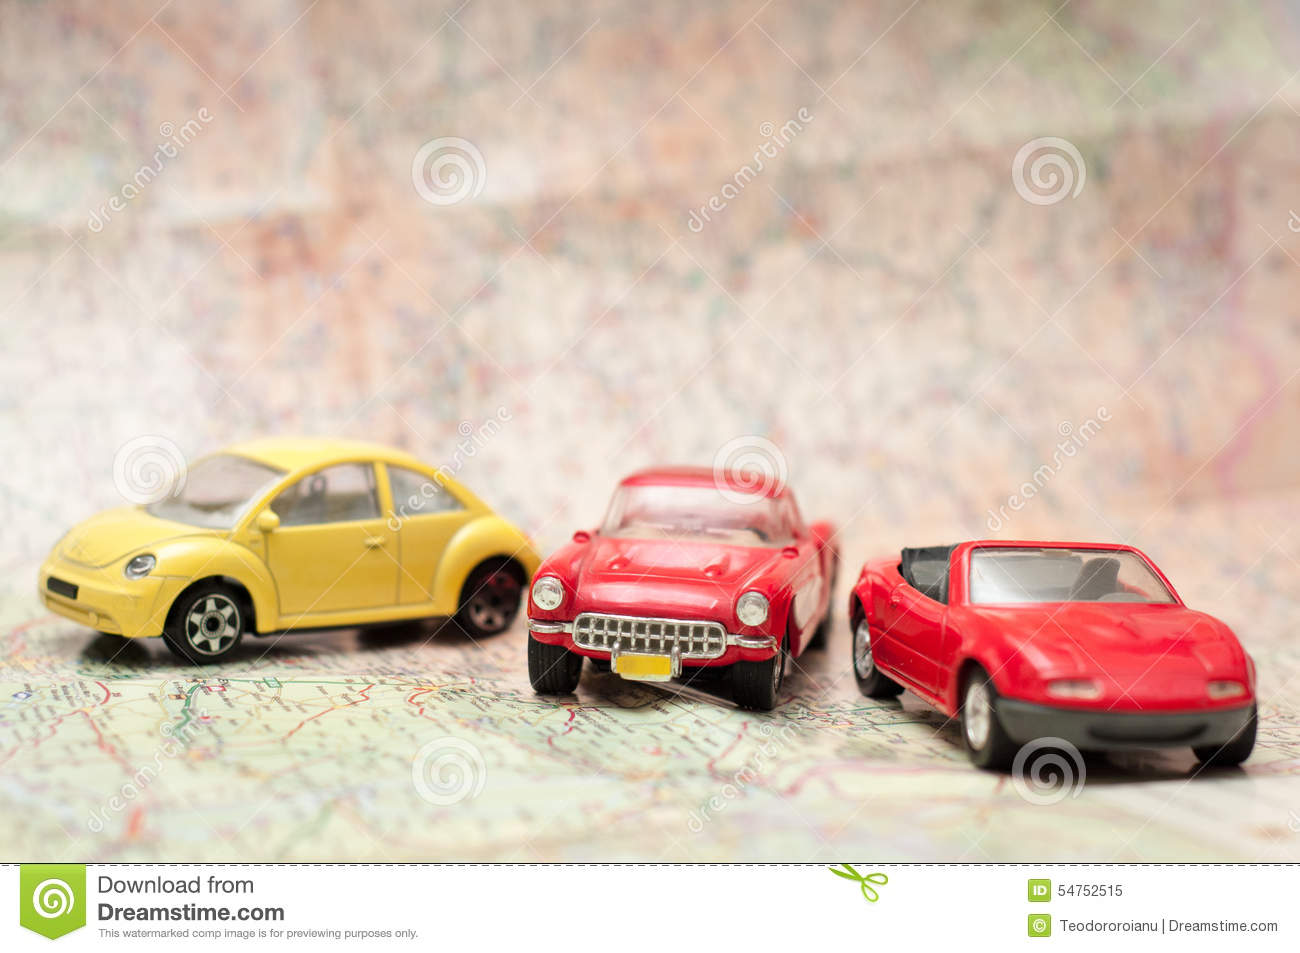 Old school toy cars stock image. Image of leisure, route - 54752515